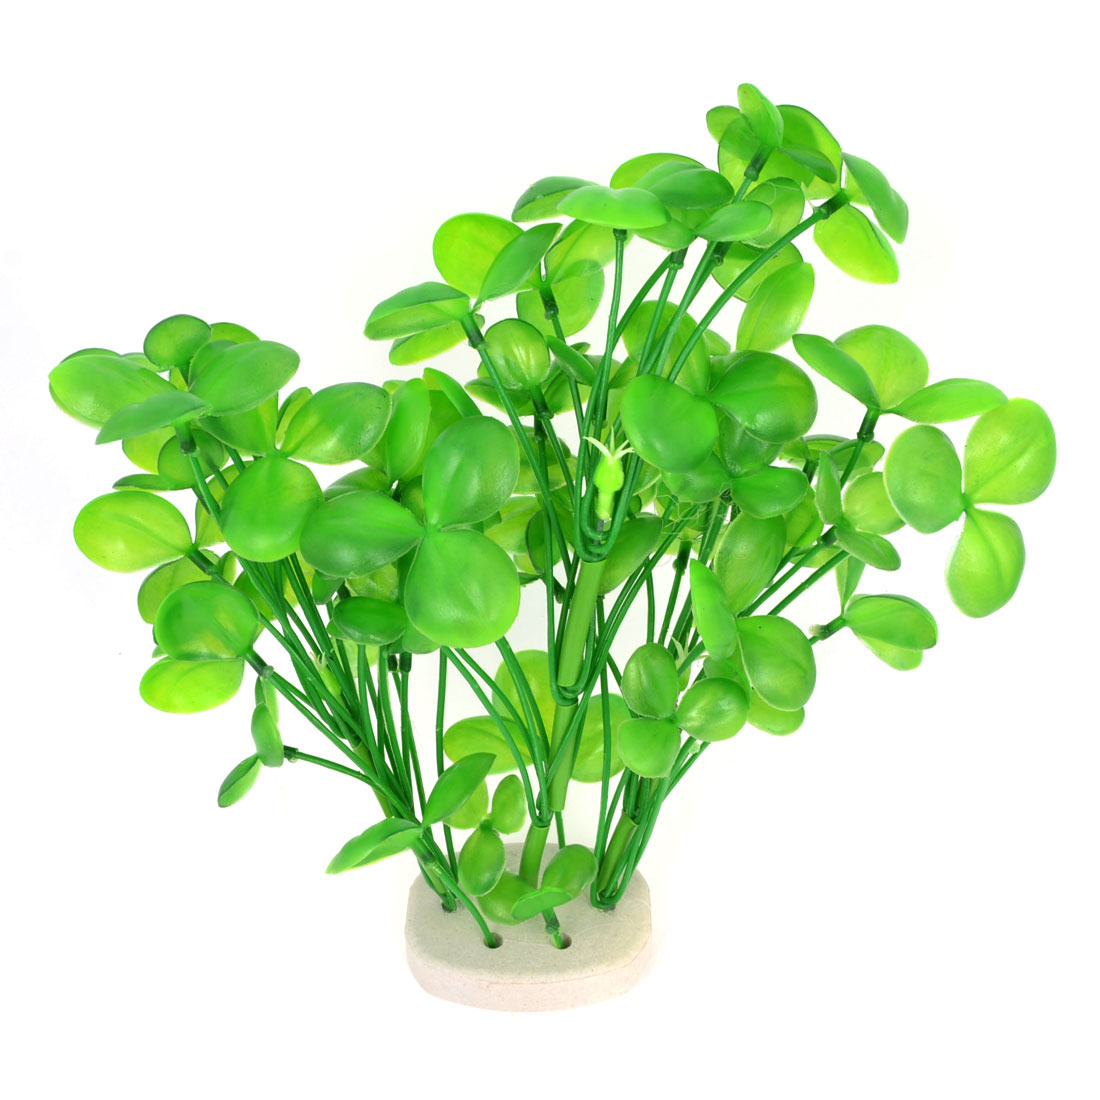 "8.7"" High Aquarium Landscaping Green Plastic Artificial Aquatic Grass Plant"